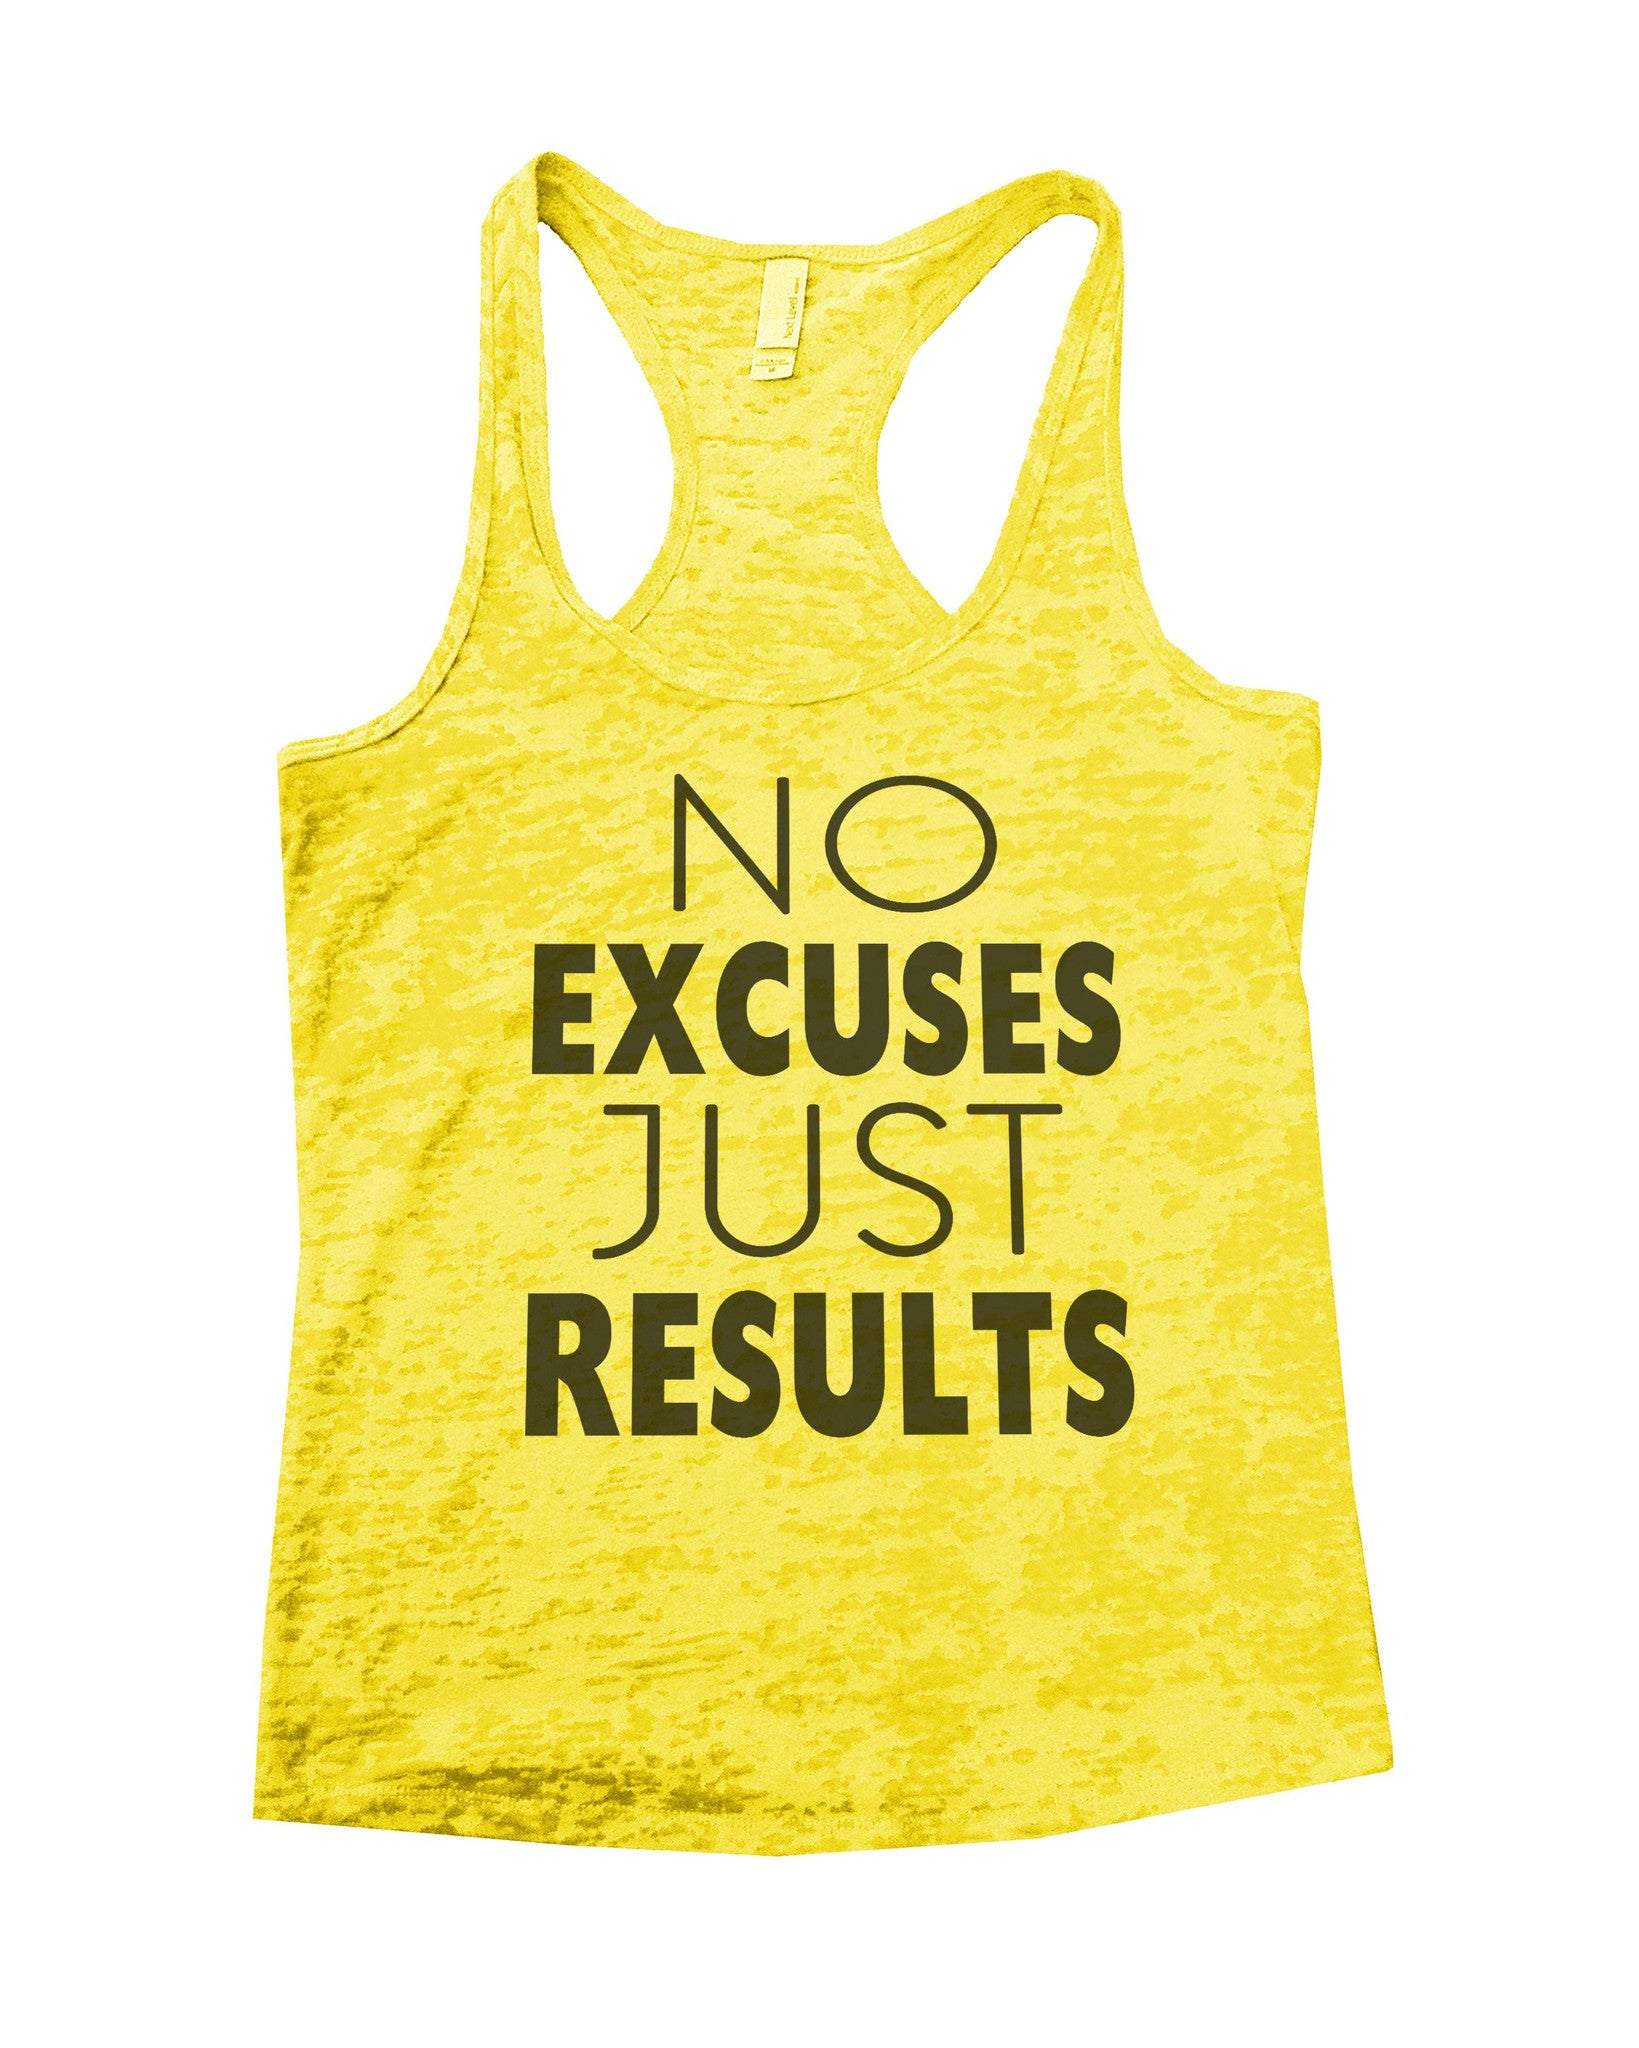 No Excuses Just Results Burnout Tank Top By BurnoutTankTops.com - 747 - Funny Shirts Tank Tops Burnouts and Triblends  - 6